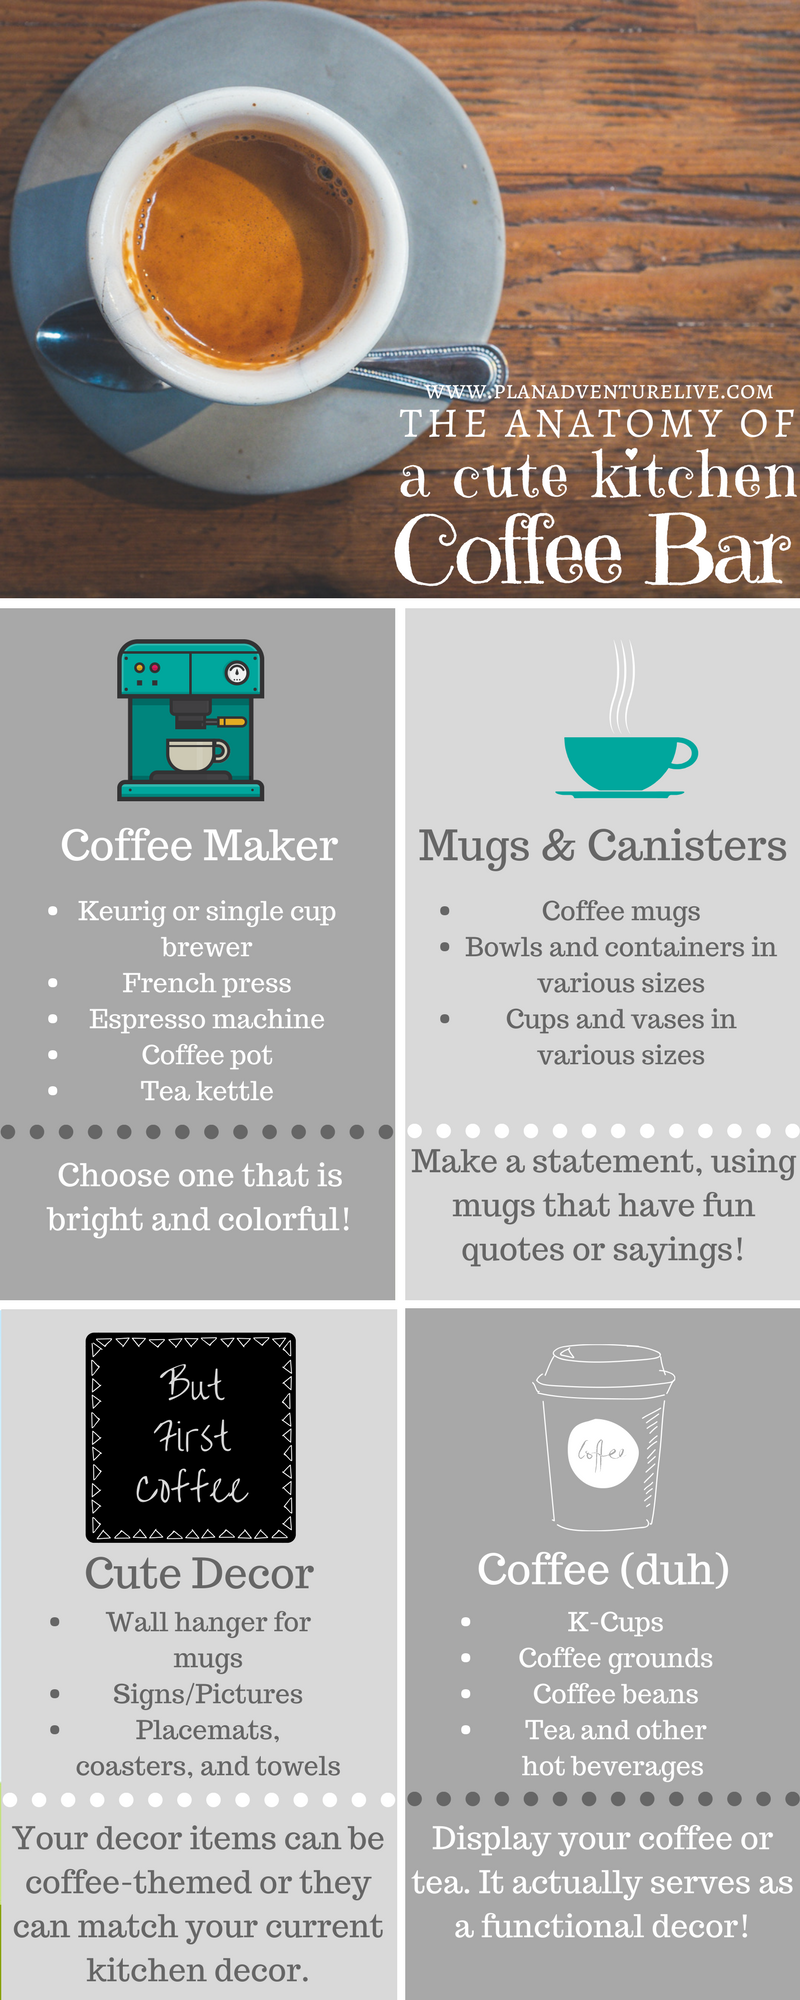 The Anatomy of a Cute Kitchen Coffee Bar — Plan. Adventure. Live.